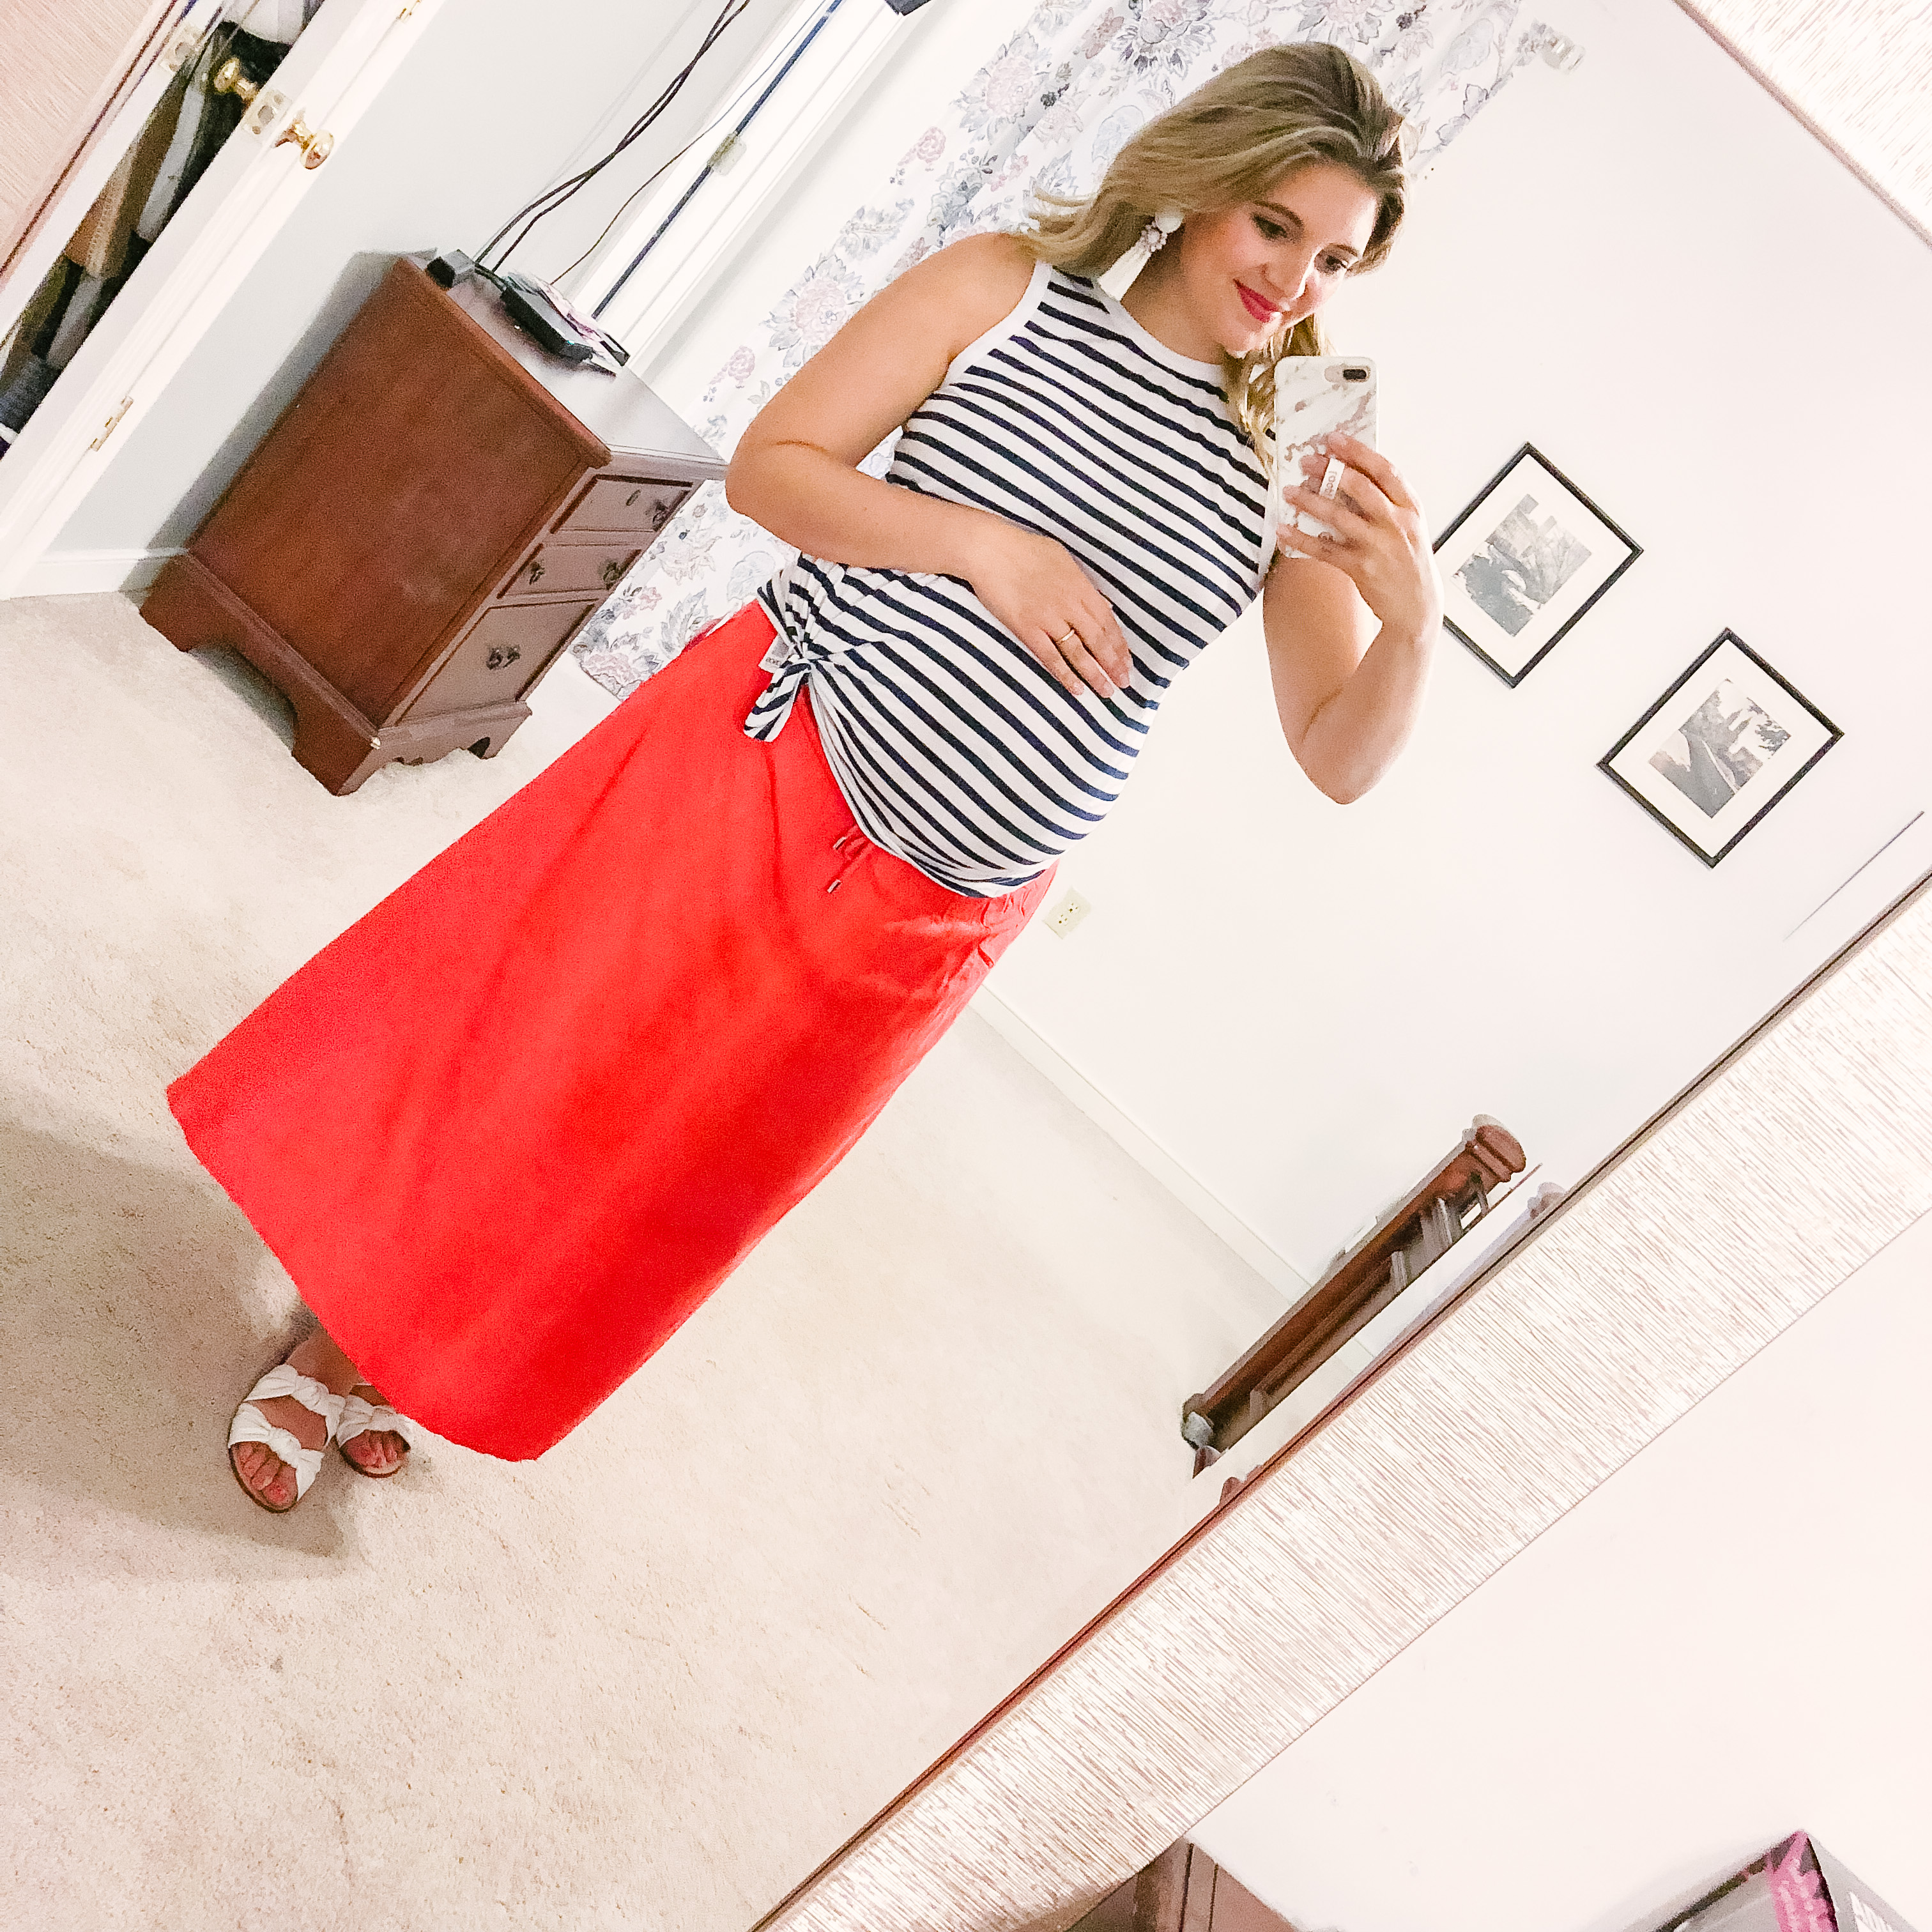 4th of july bump outfit - striped tank and maxi skirt | | patriotic outfit roundup - come see over 15 4th of july outfit ideas! bylaurenm.com